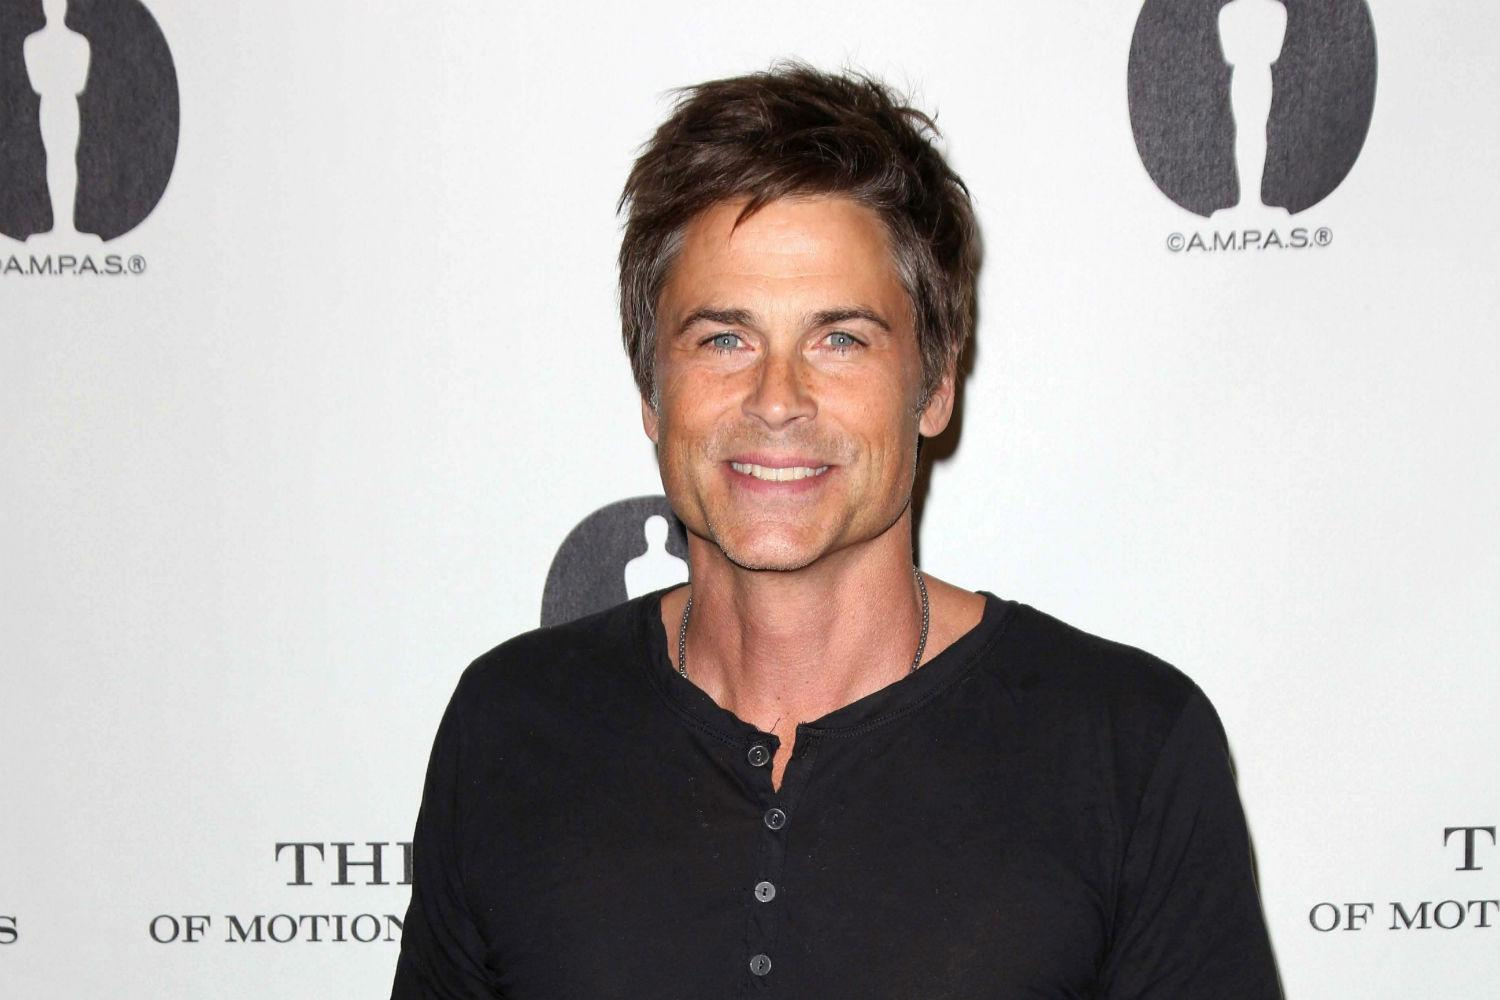 rob lowe moviesrob lowe roast, rob lowe parks and rec, rob lowe 2017, rob lowe code black, rob lowe ian somerhalder, rob lowe twitter, rob lowe californication, rob lowe movies, rob lowe interview, rob lowe family guy, rob lowe book, rob lowe roast watch online, rob lowe stop pooping, rob lowe jodie foster, robert lowe musician, rob lowe lego, rob lowe imdb, rob lowe natal chart, rob lowe oscars, rob lowe filmography